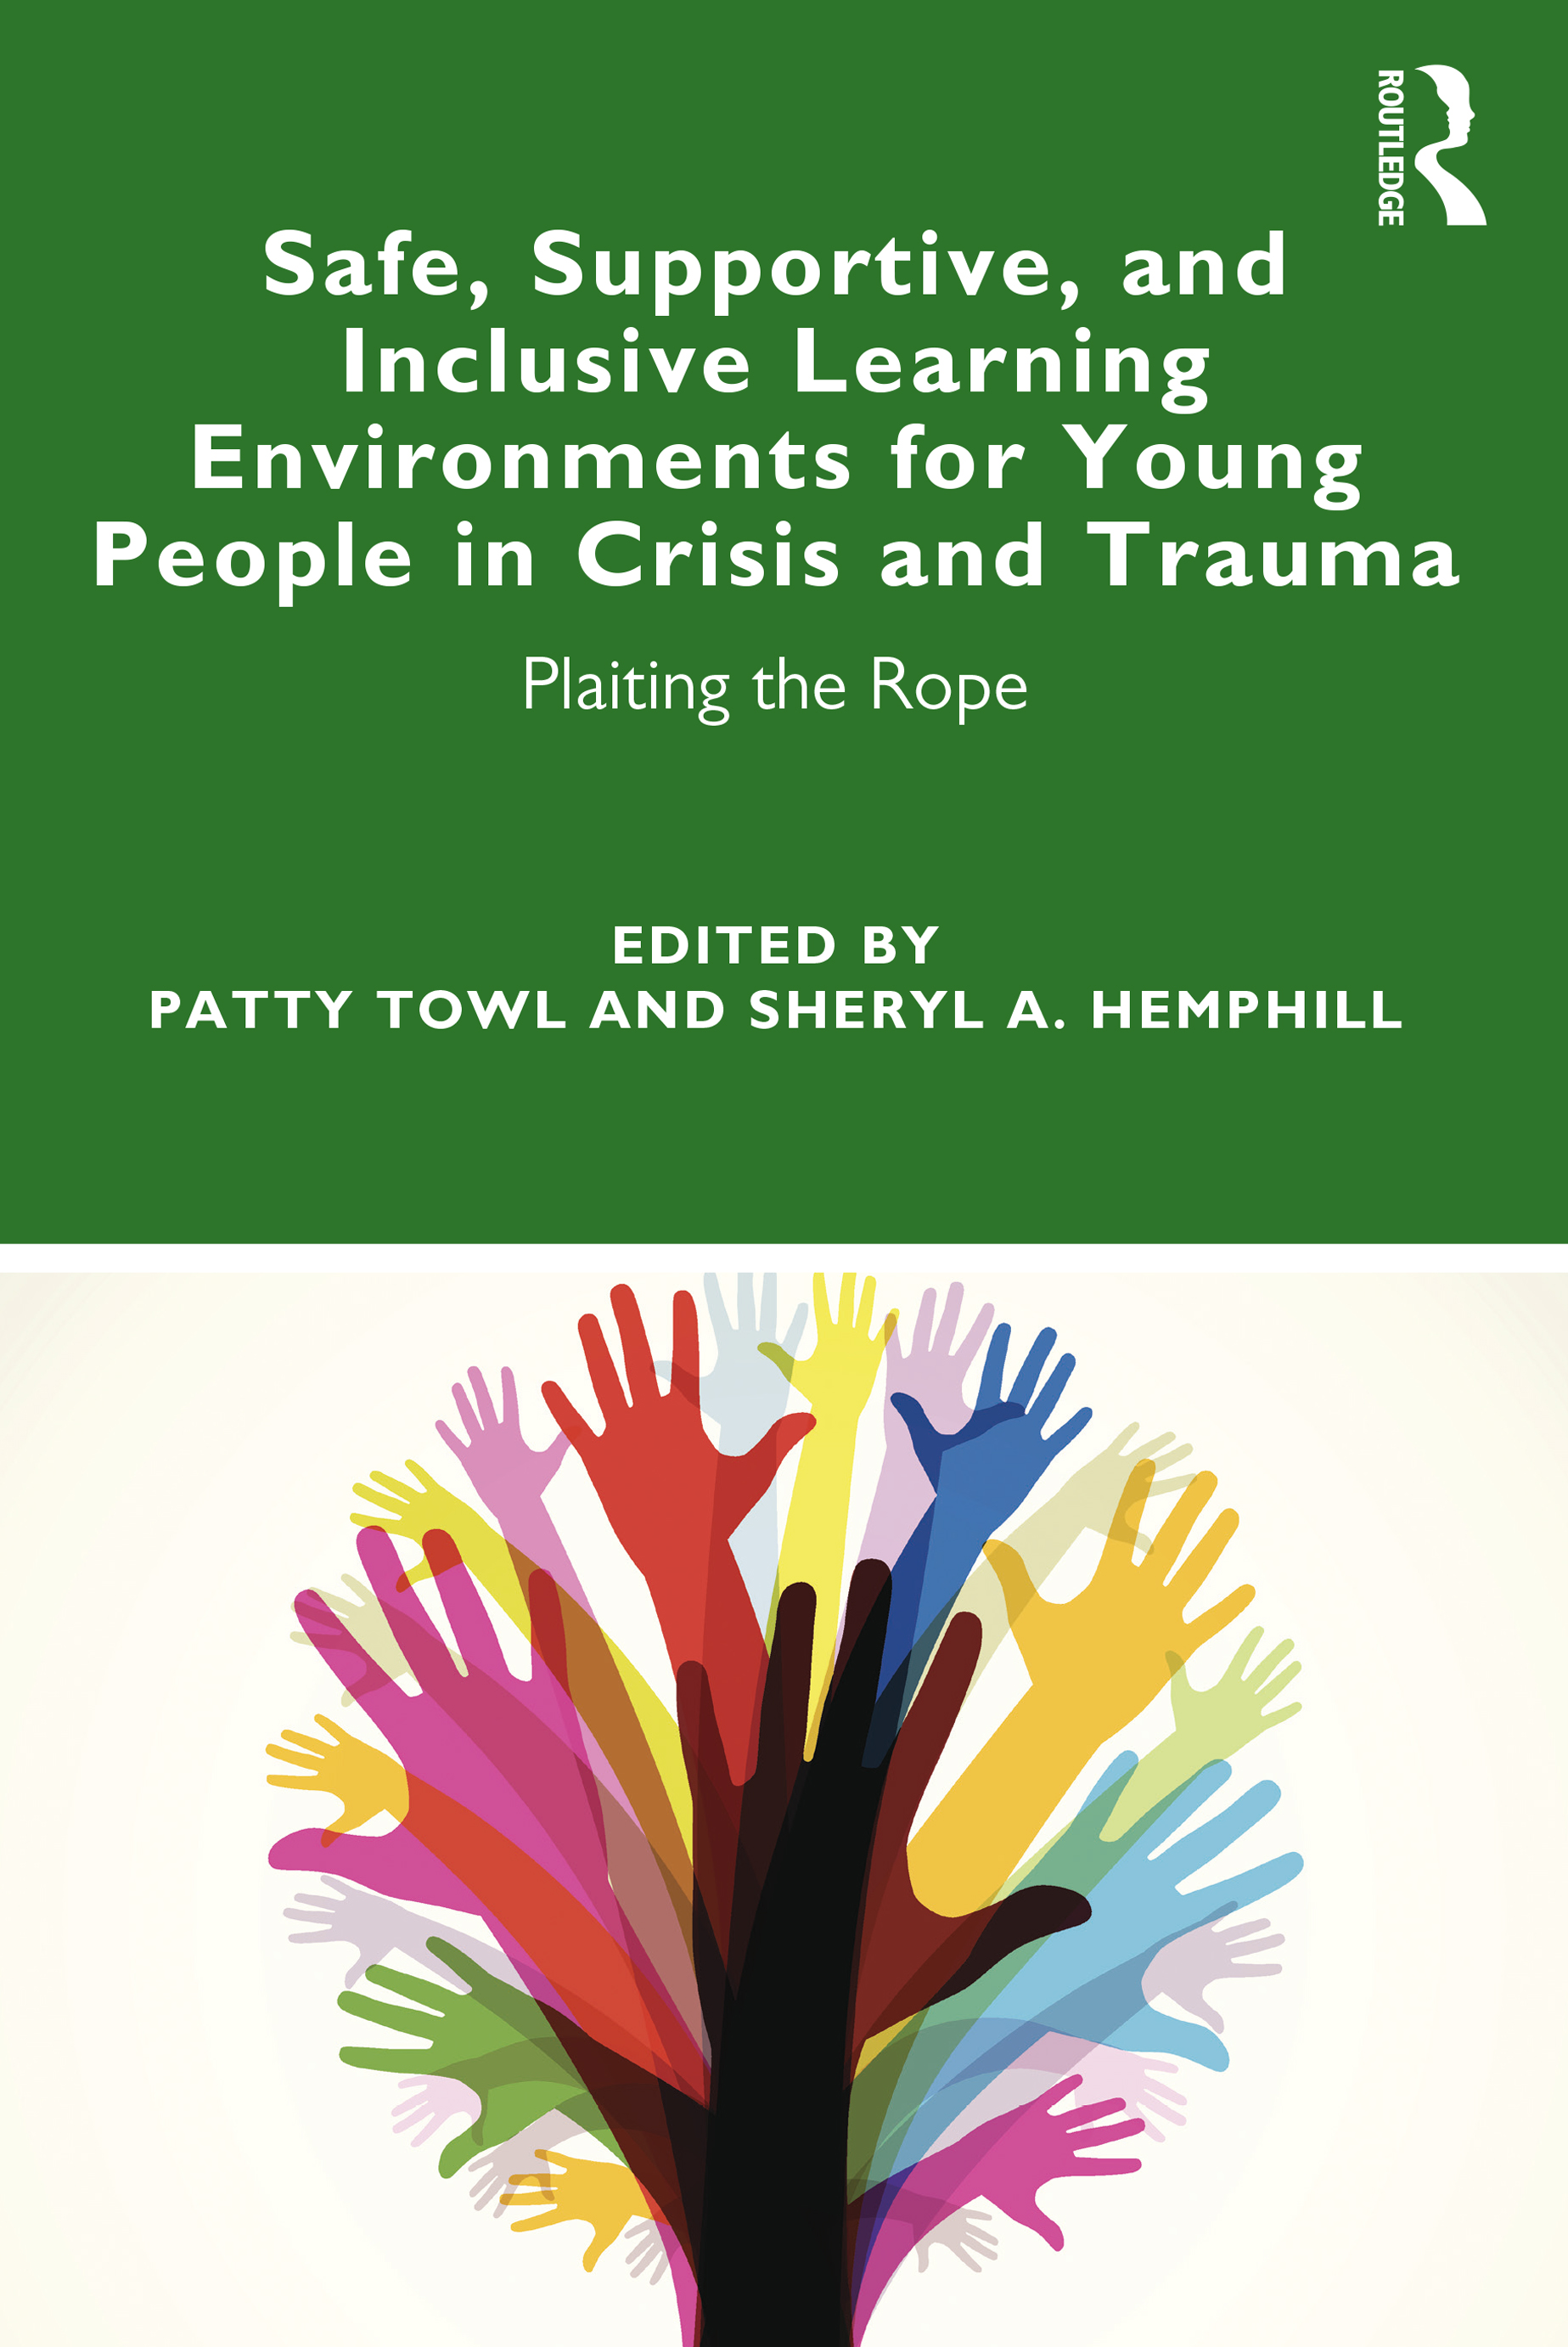 Safe, Supportive, and Inclusive Learning Environments for Young People in Crisis and Trauma: Plaiting the Rope book cover